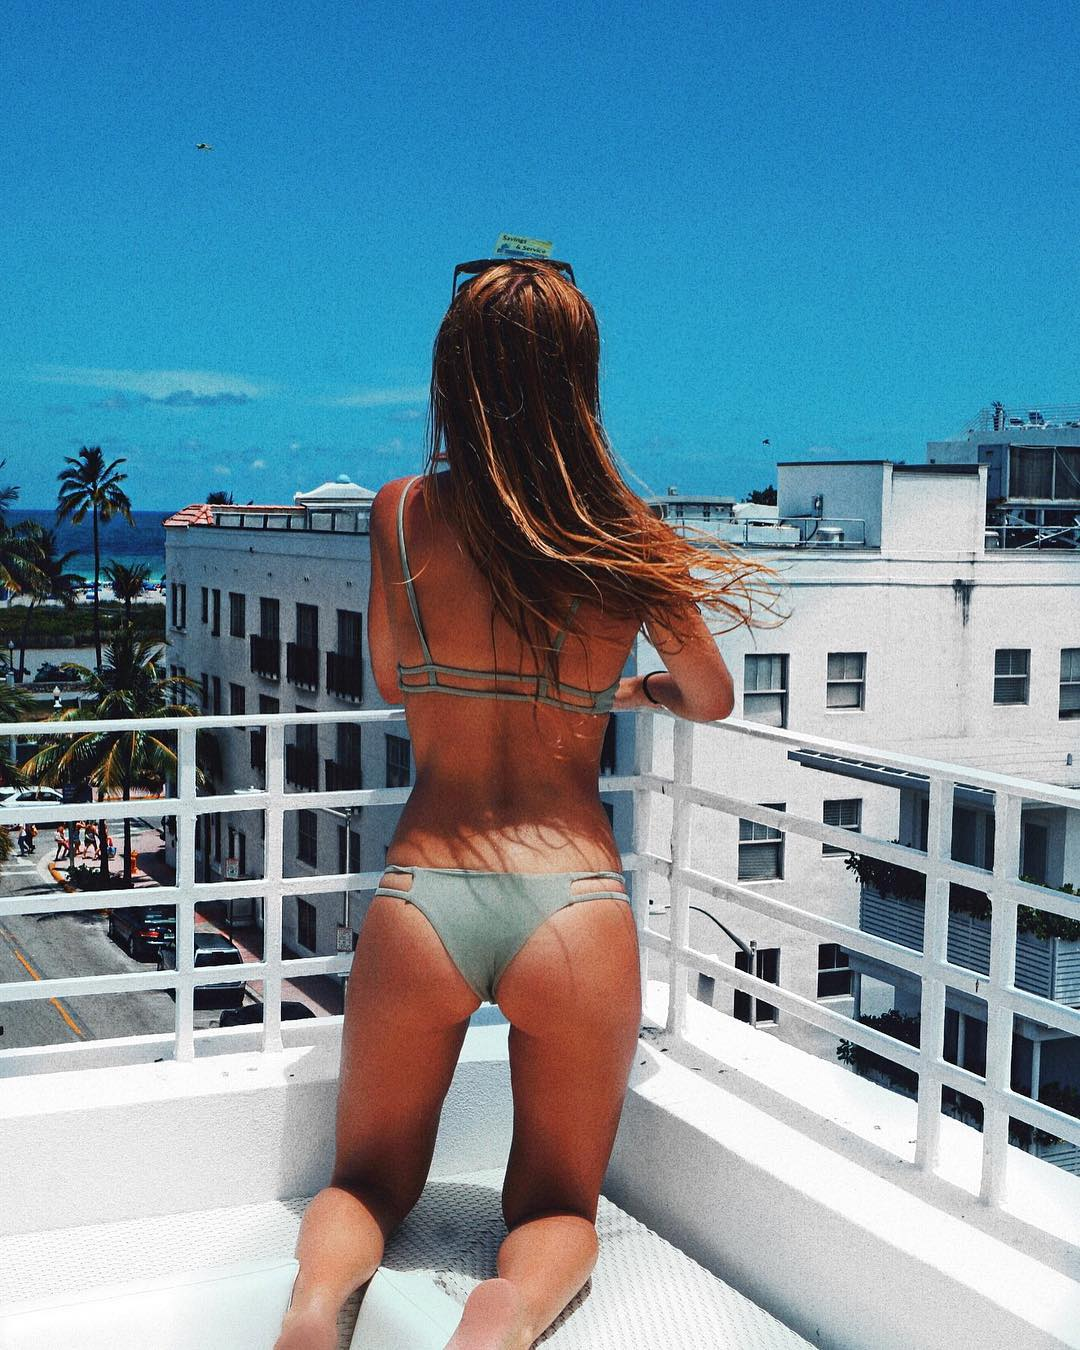 Alexis checking the view in Miami Beach, Florida